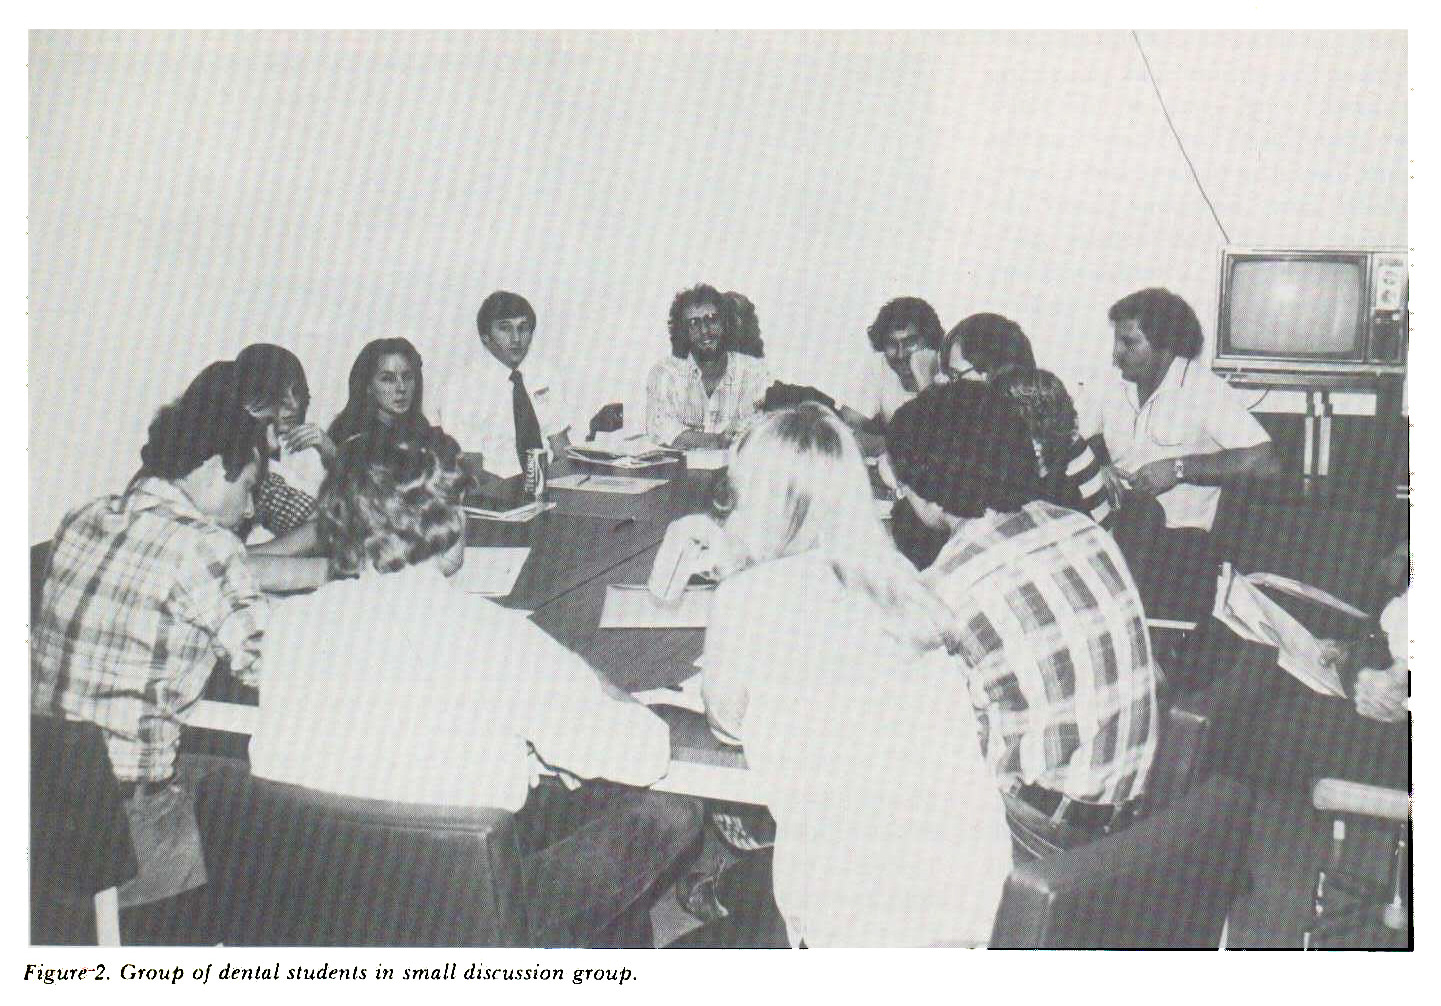 Figure 2. Group of dental students in small discussion group.